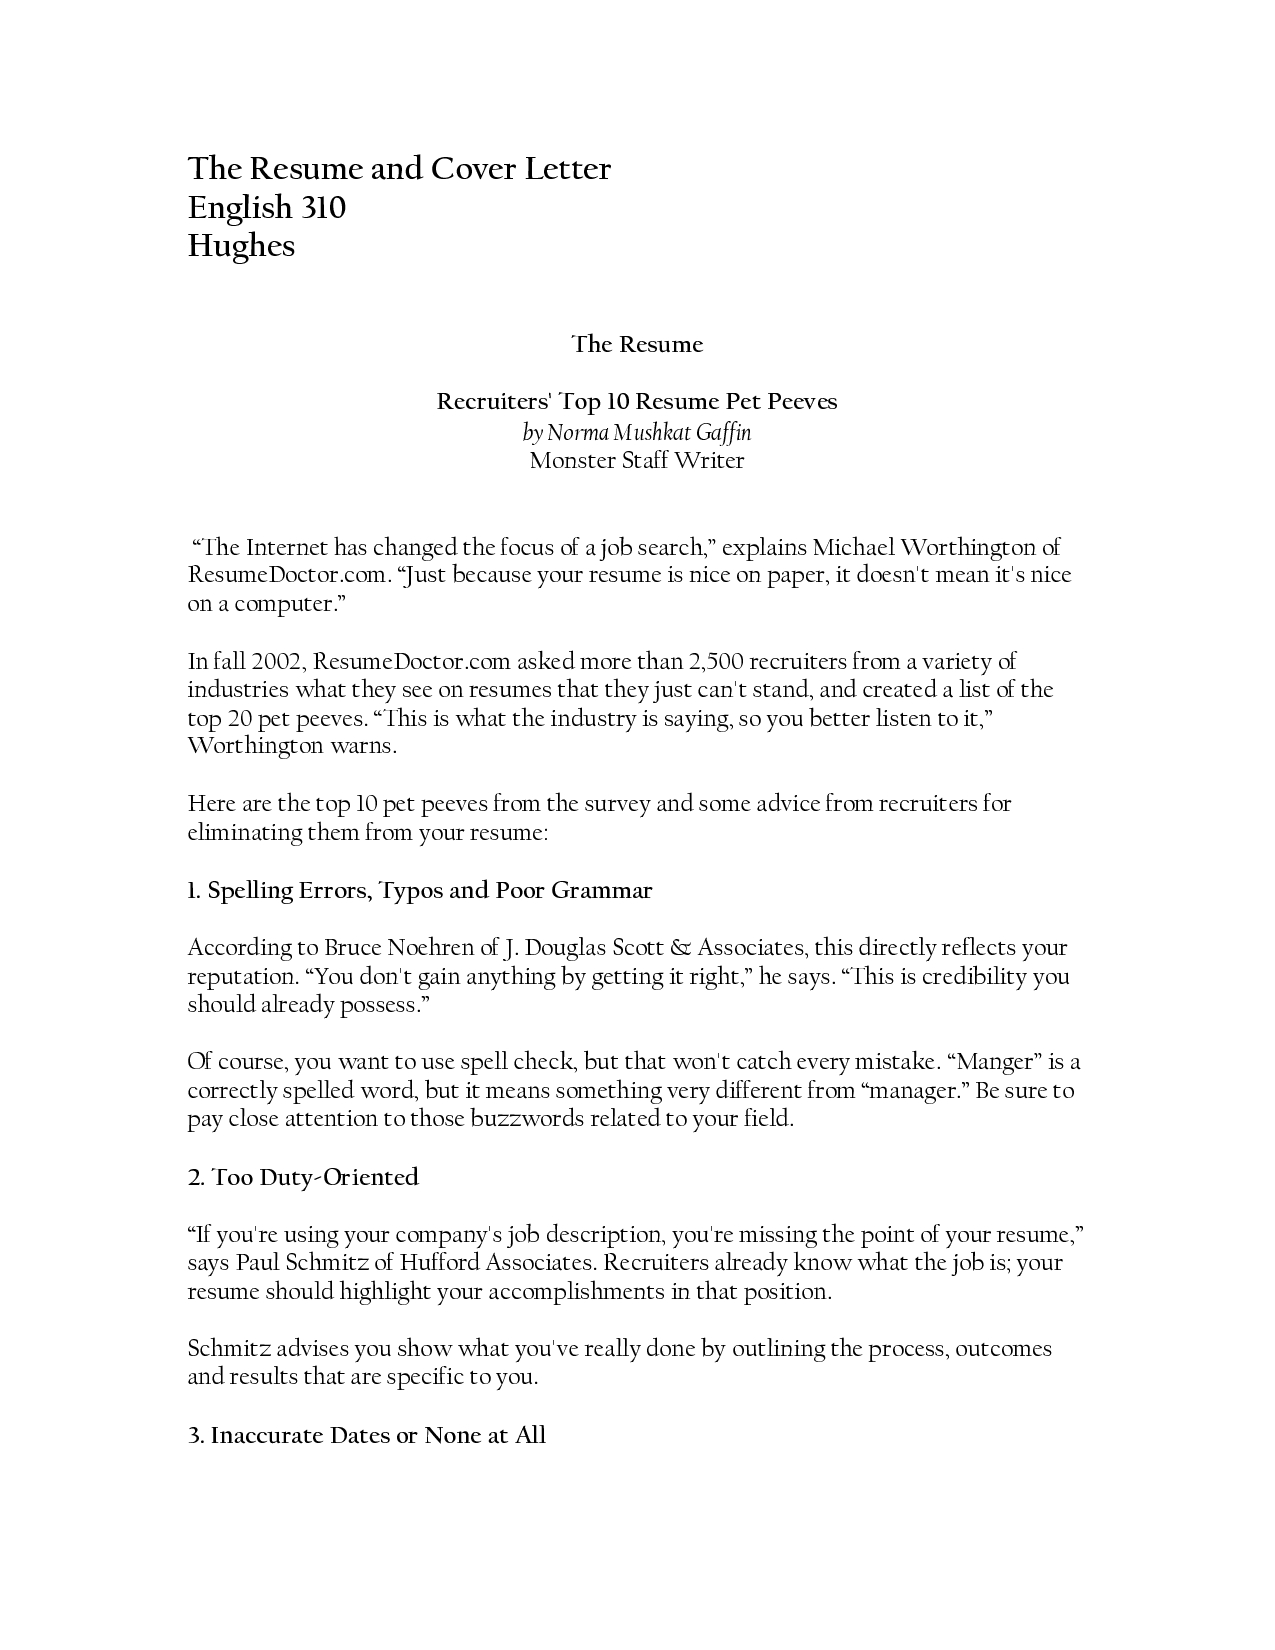 Relocation Cover Letter Template - format Relocation Cover Letter and Free Letter Relocation